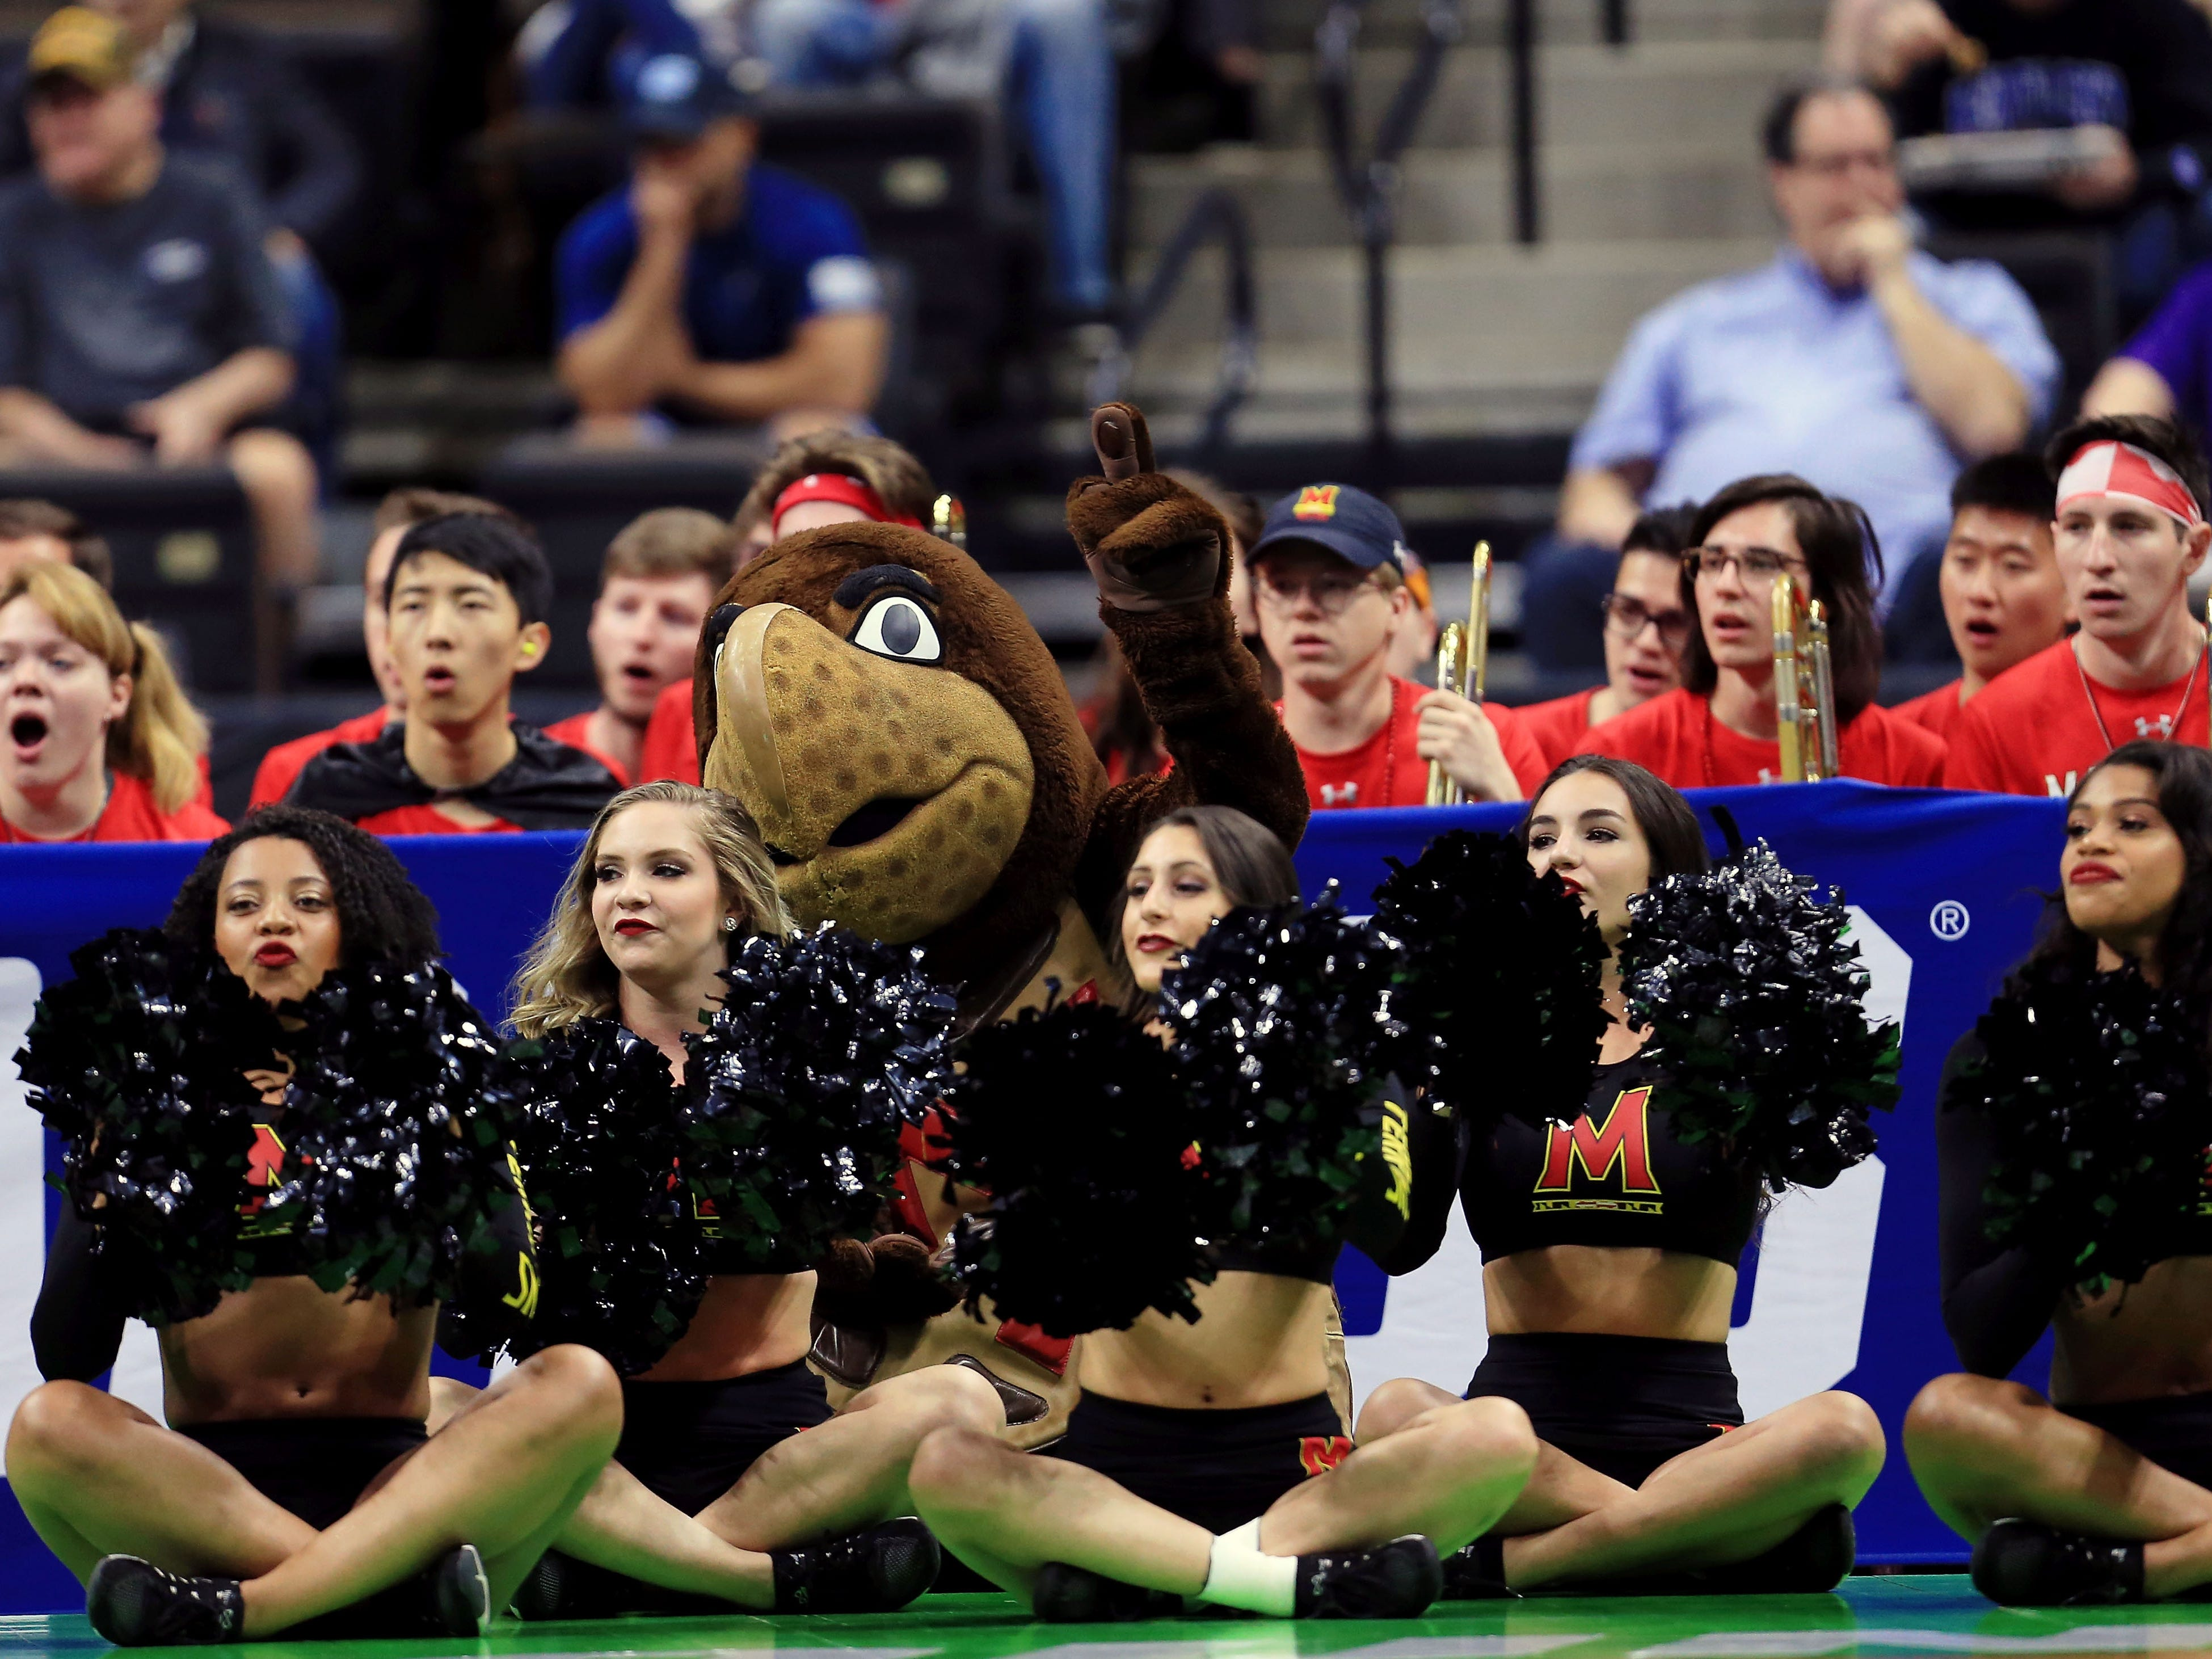 Round of 32: The Maryland Terrapins mascot sits with the cheerleaders during the game against LSU.